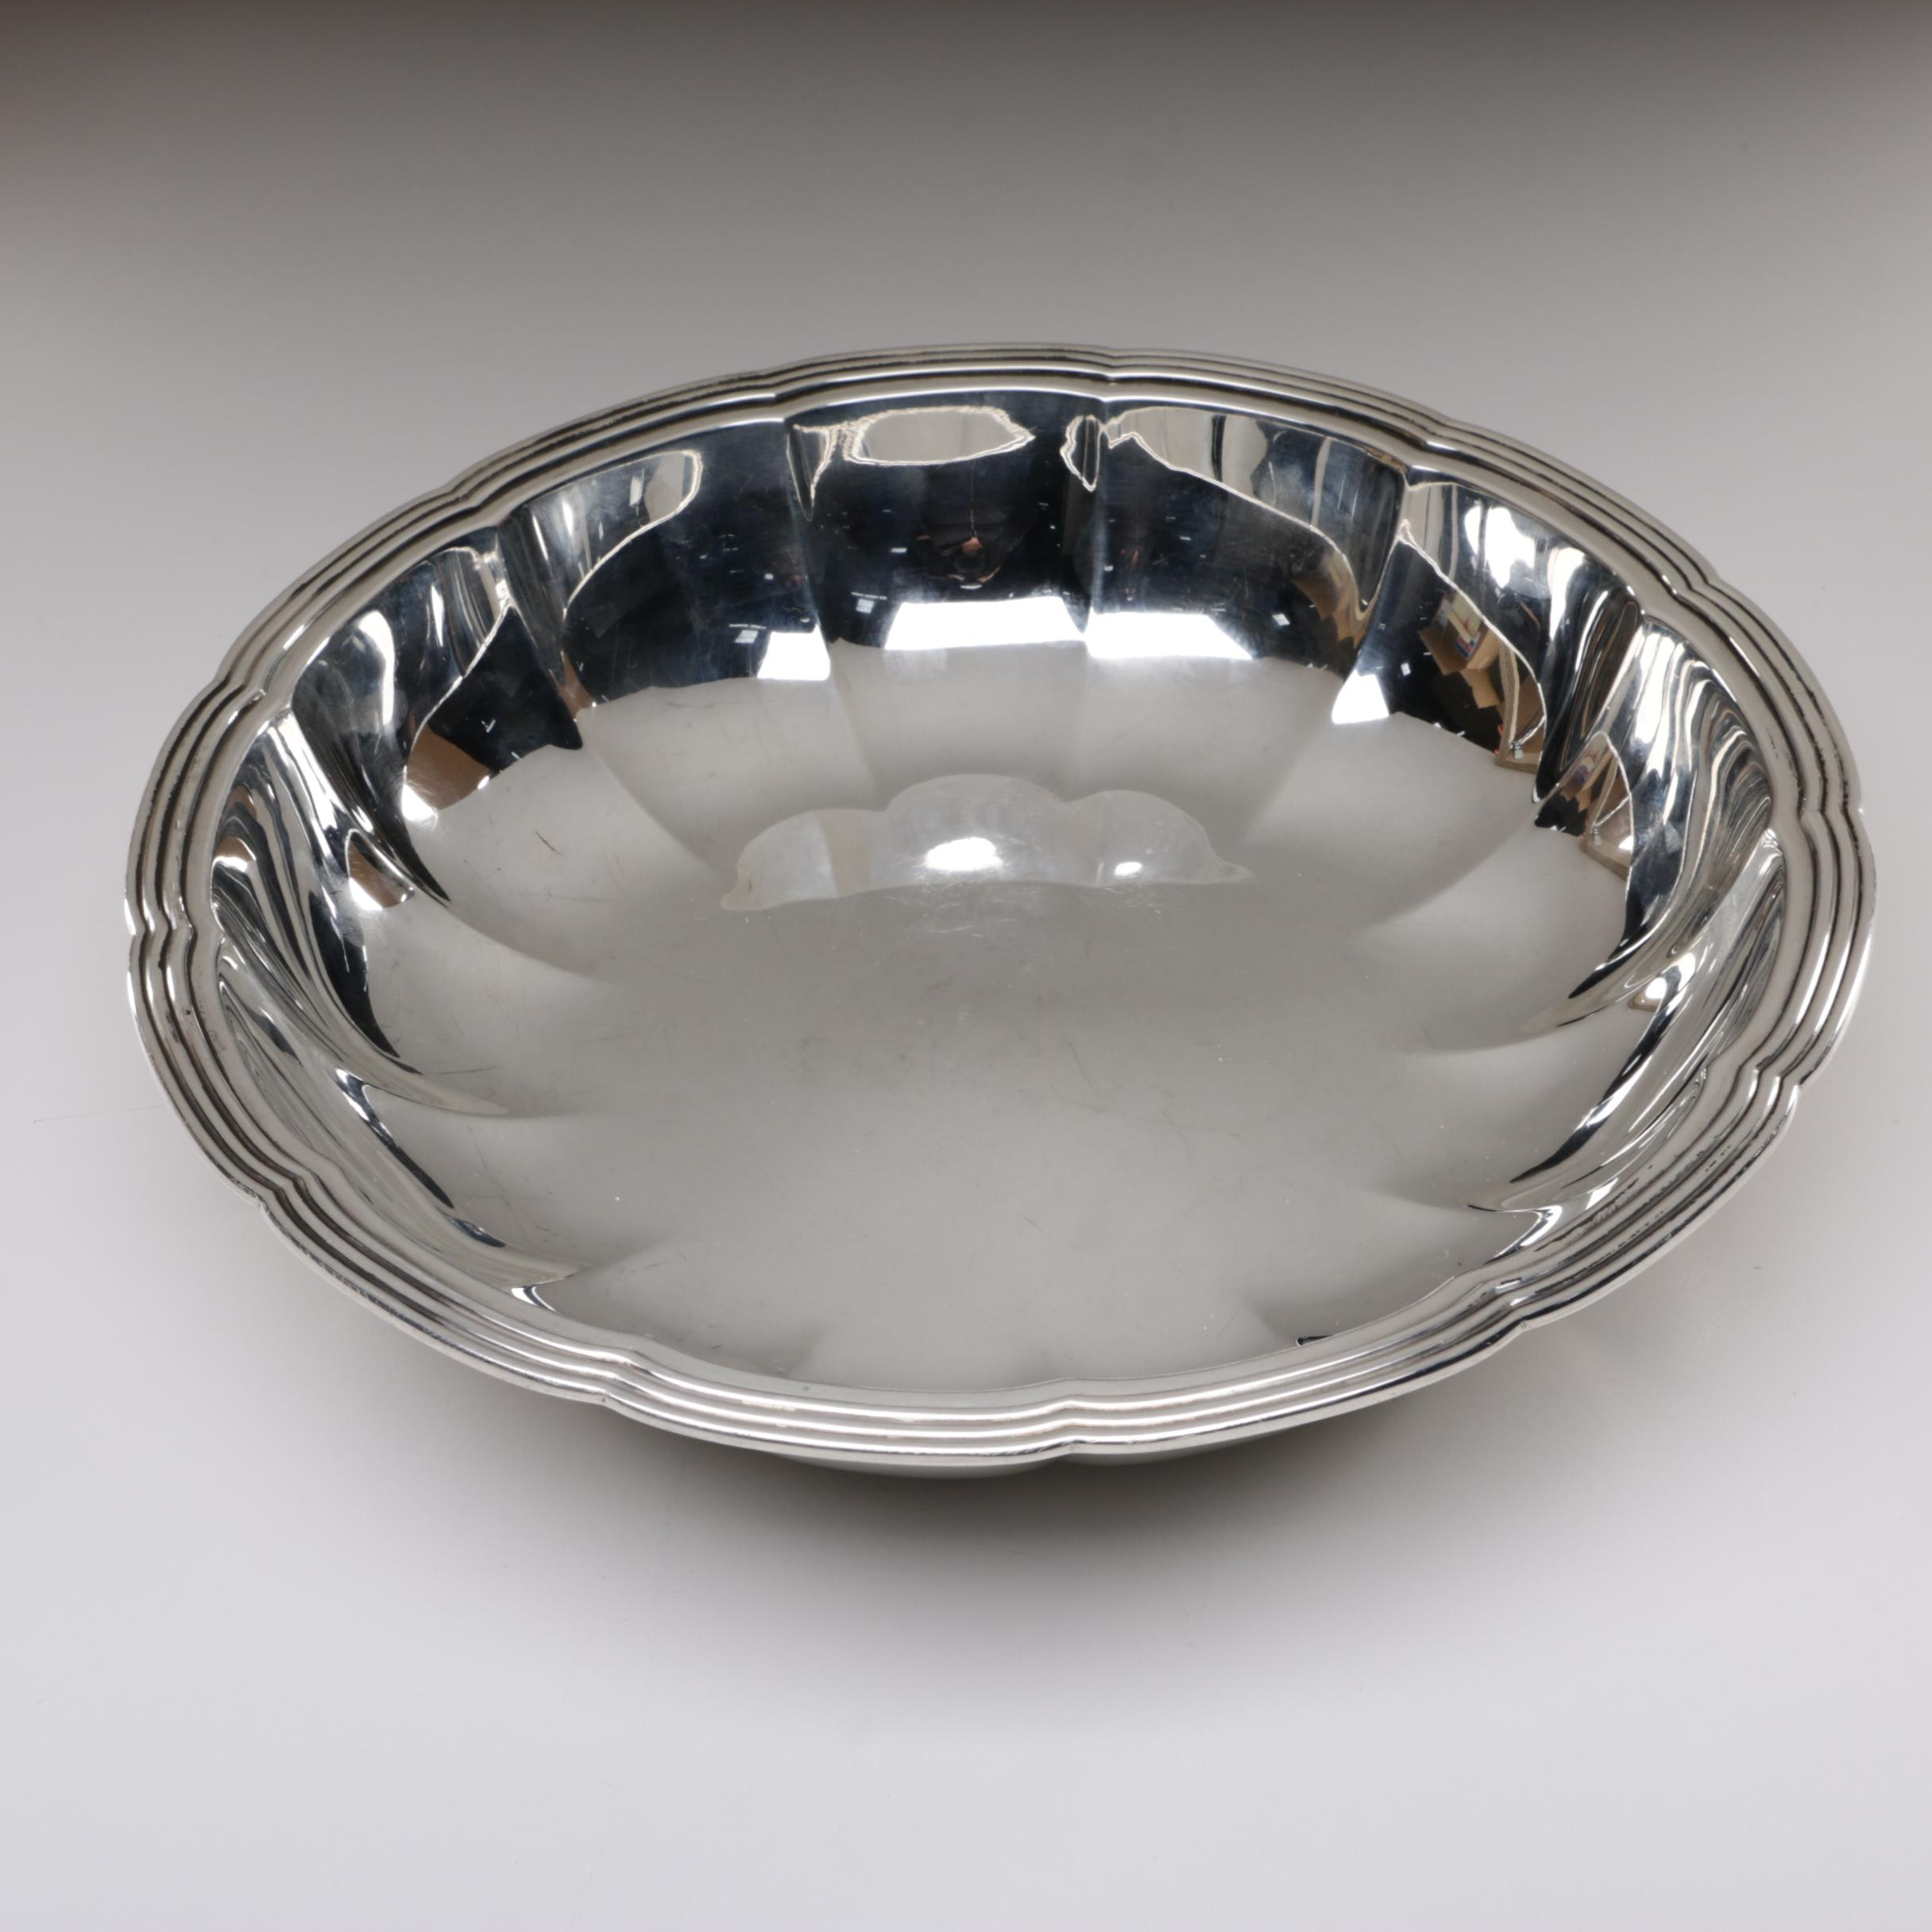 Tiffany & Co. Sterling Silver Lobed Bowl, 1940-1947